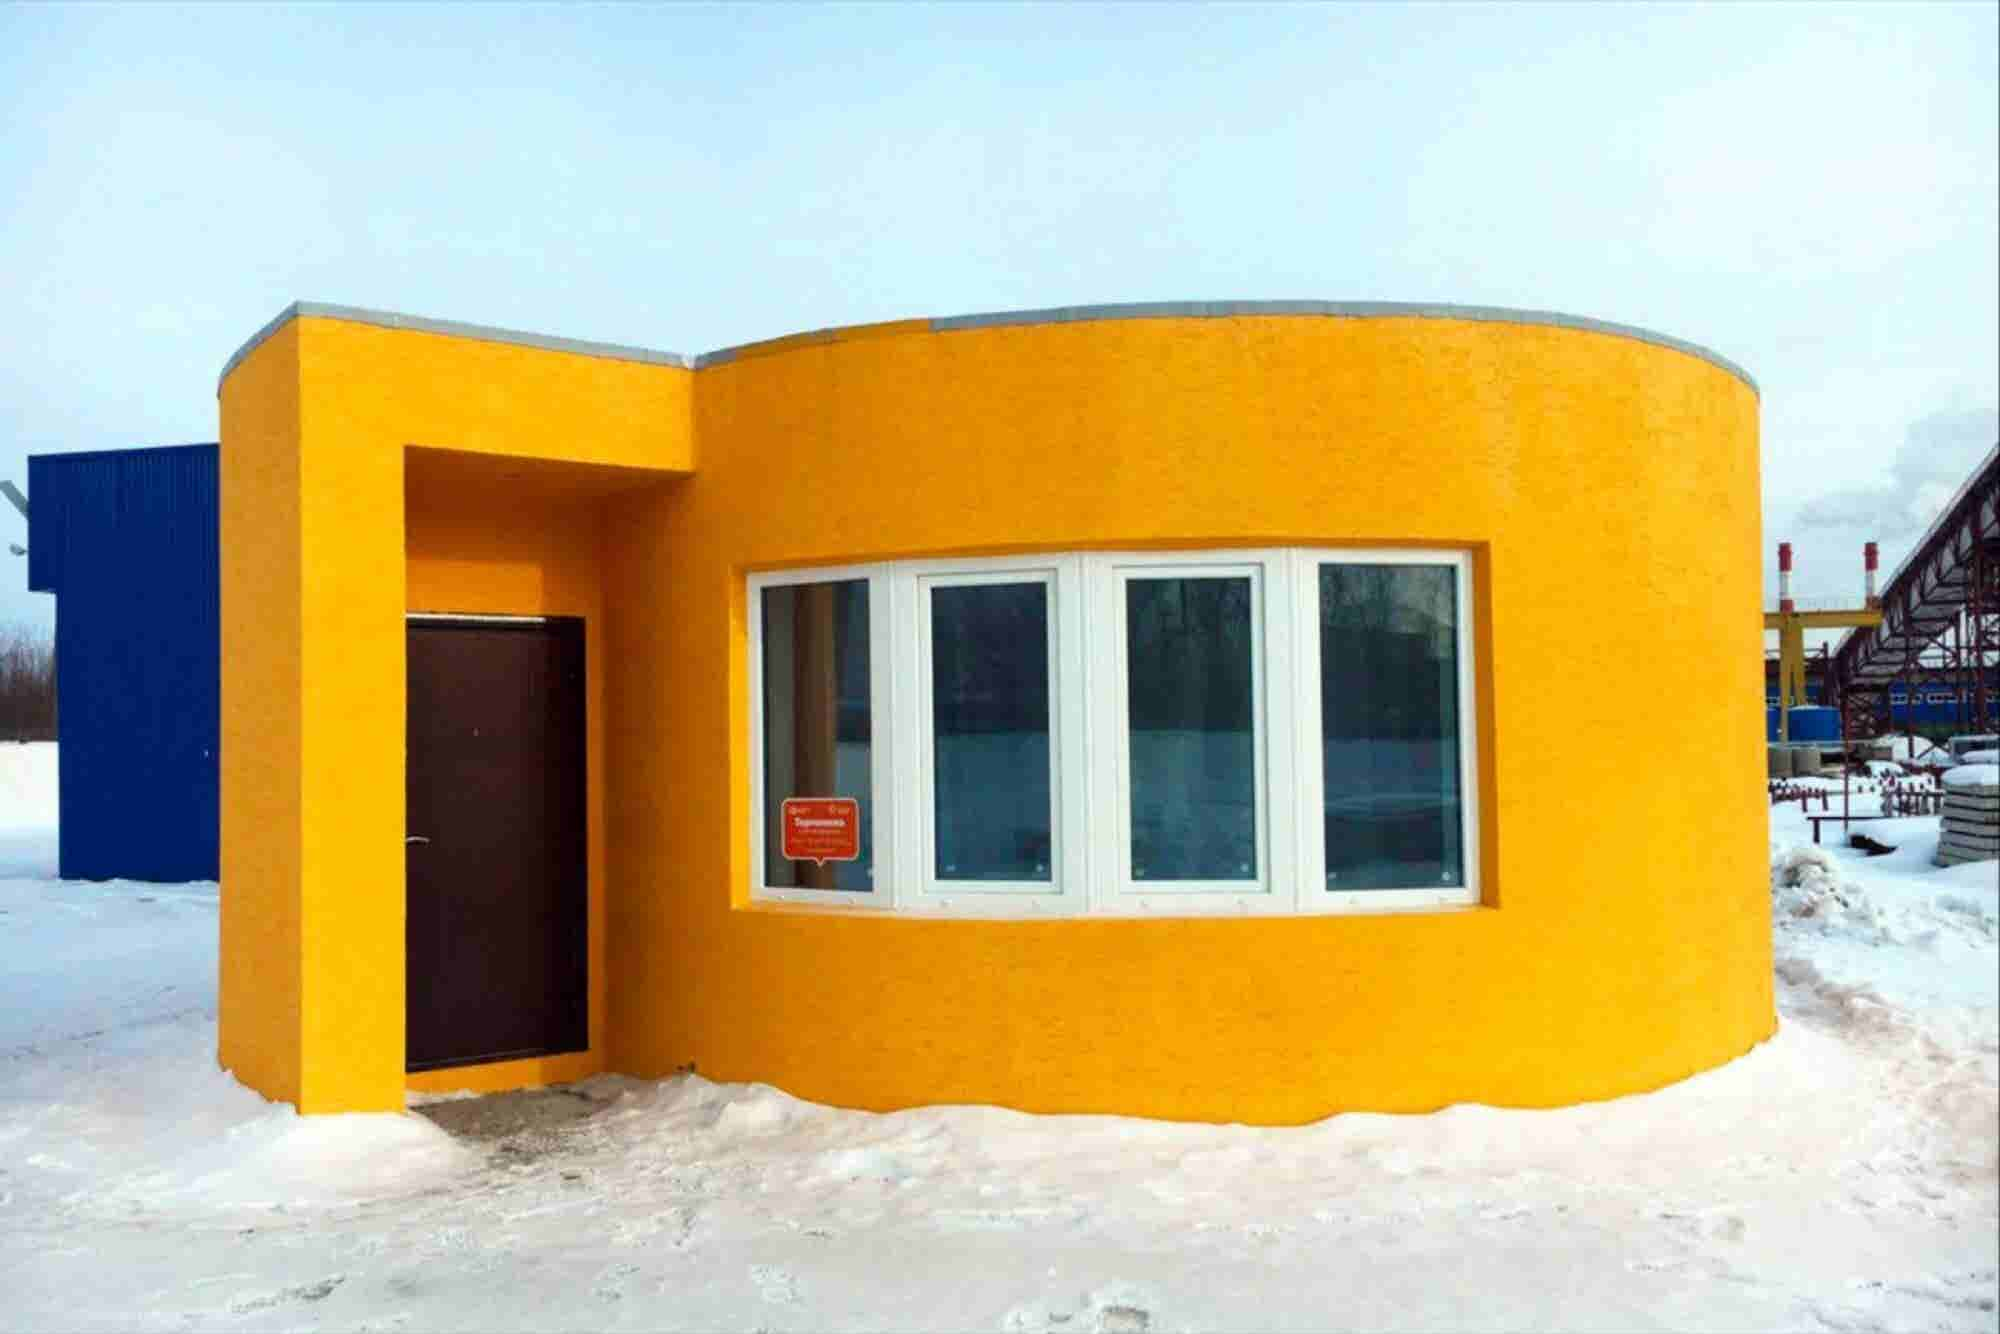 A San Francisco Startup 3-D Printed a Whole House in 24 Hours